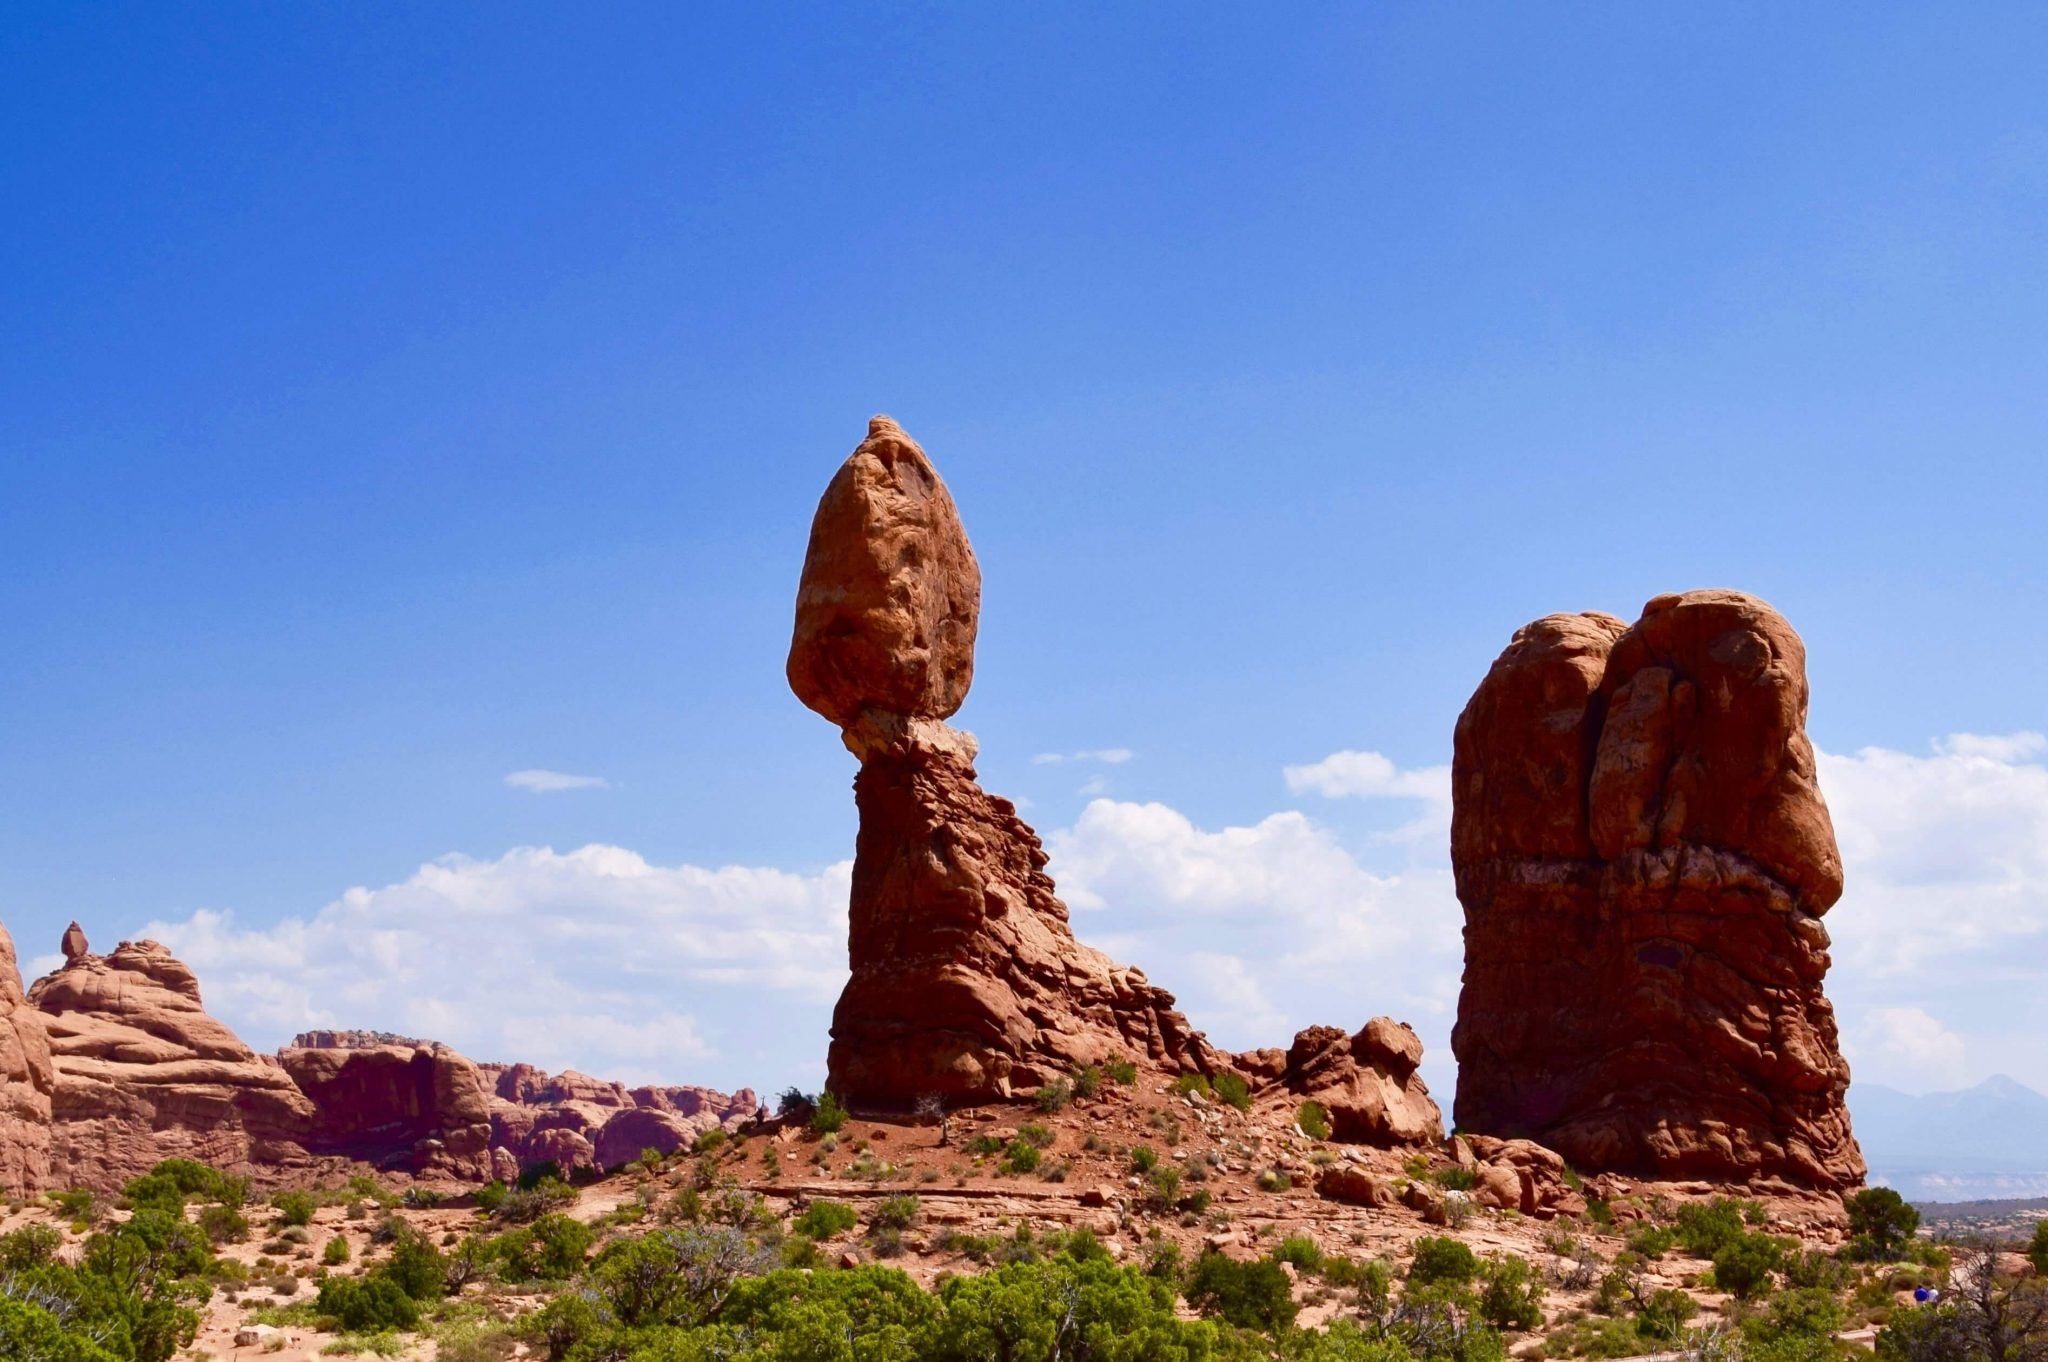 banner-balanced-rock-boulder-arches-national-park